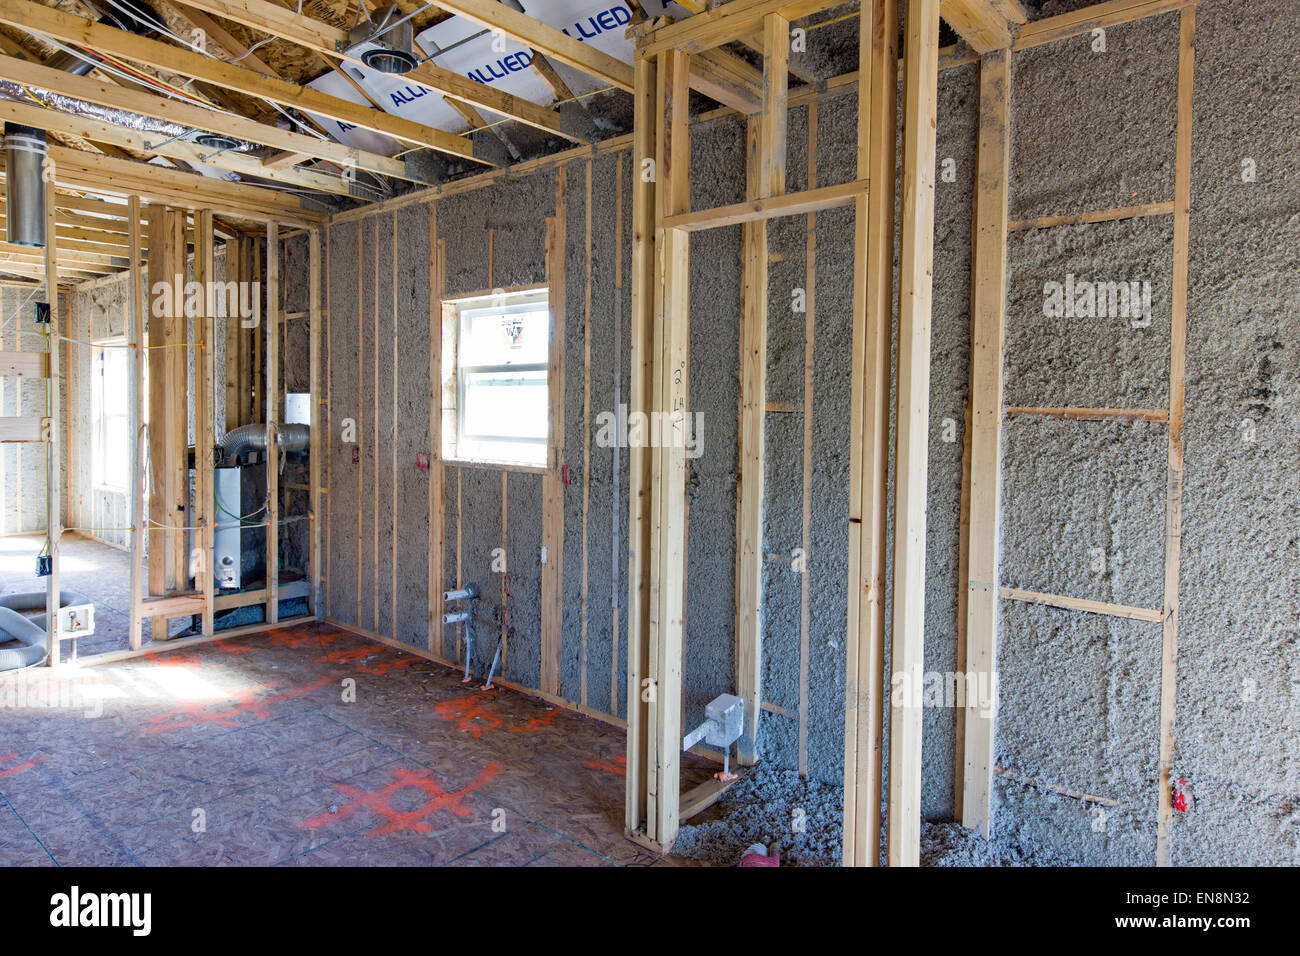 Great Interior Frame Walls With Blown In Insulation, Construction Of A Craftsman  Style Residential Home In Colorado, USA